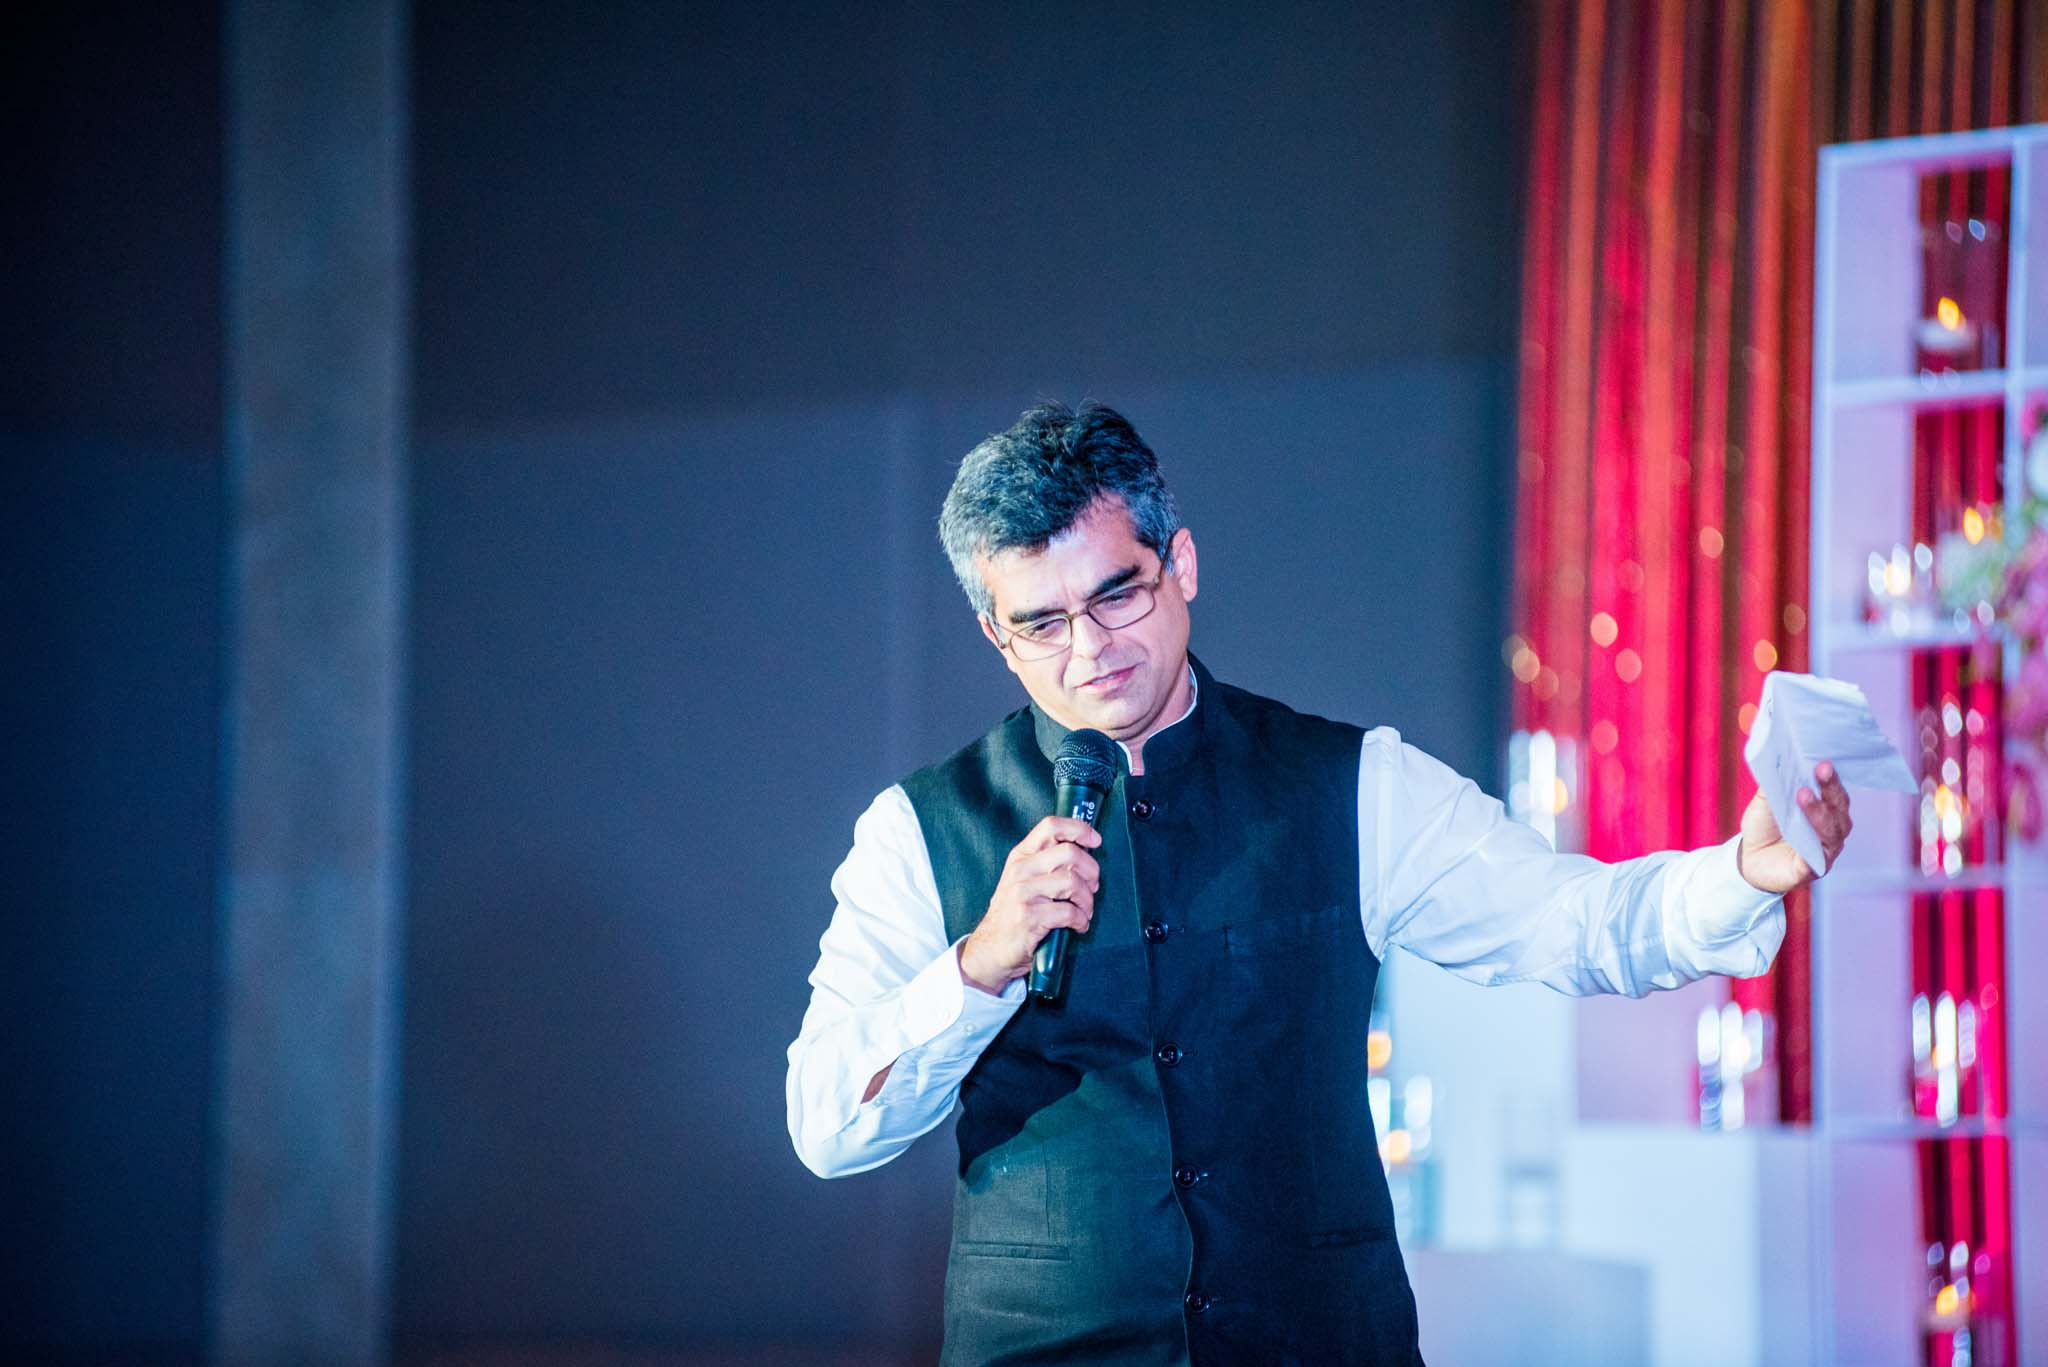 StRegis-Palladium-Mumbai-Candid-Wedding-Photography-62